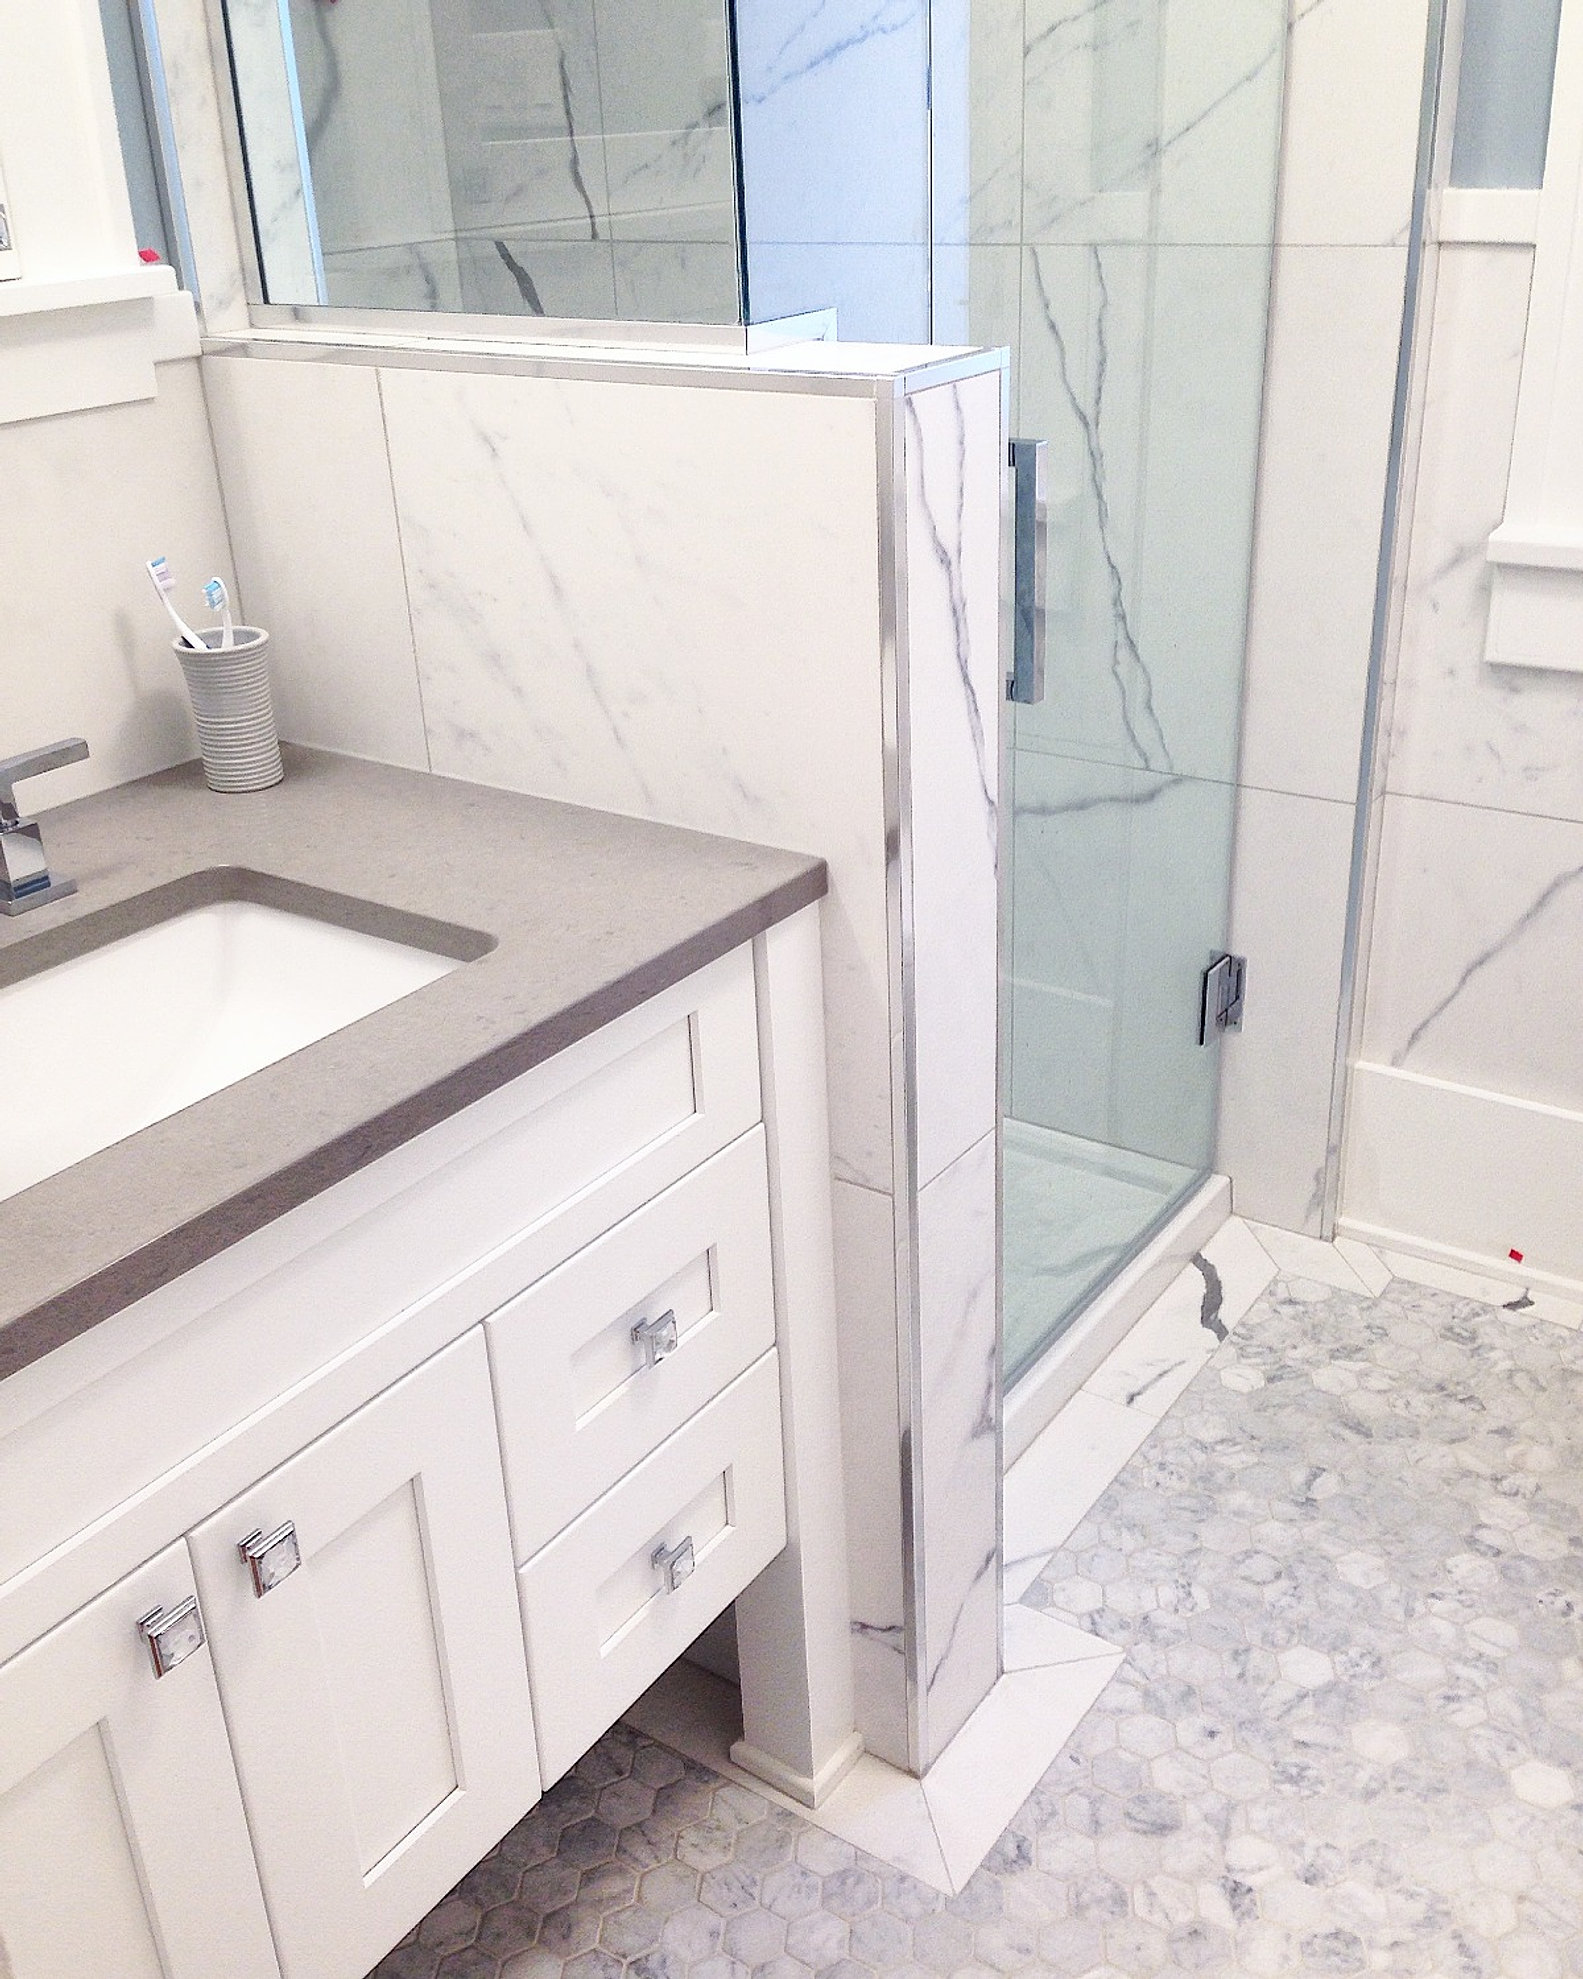 Saskatoon Bathroom Renovations: Saskatoon Bathroom Renovations